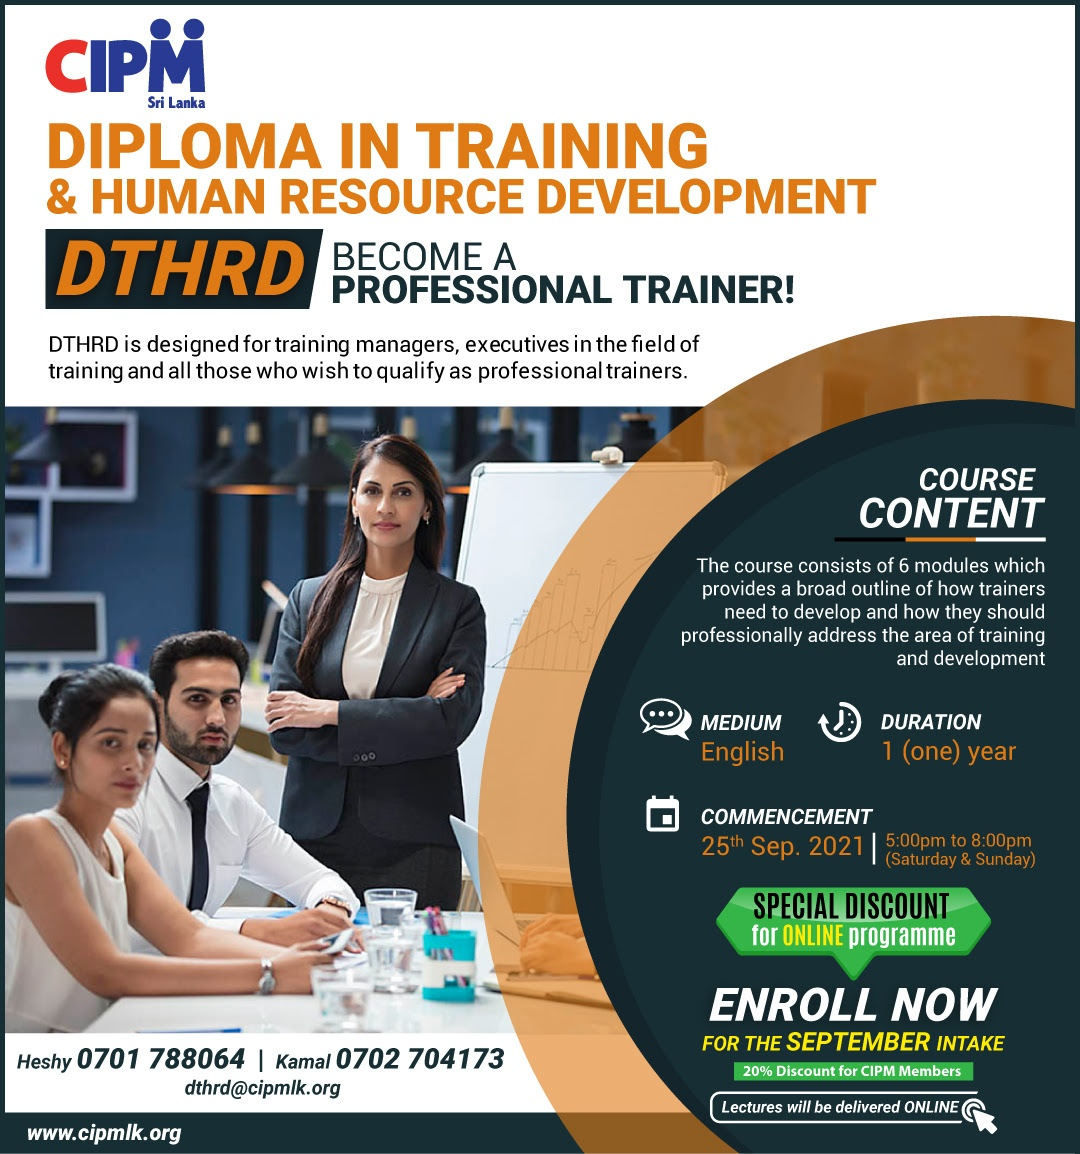 Become a Professional Trainer!